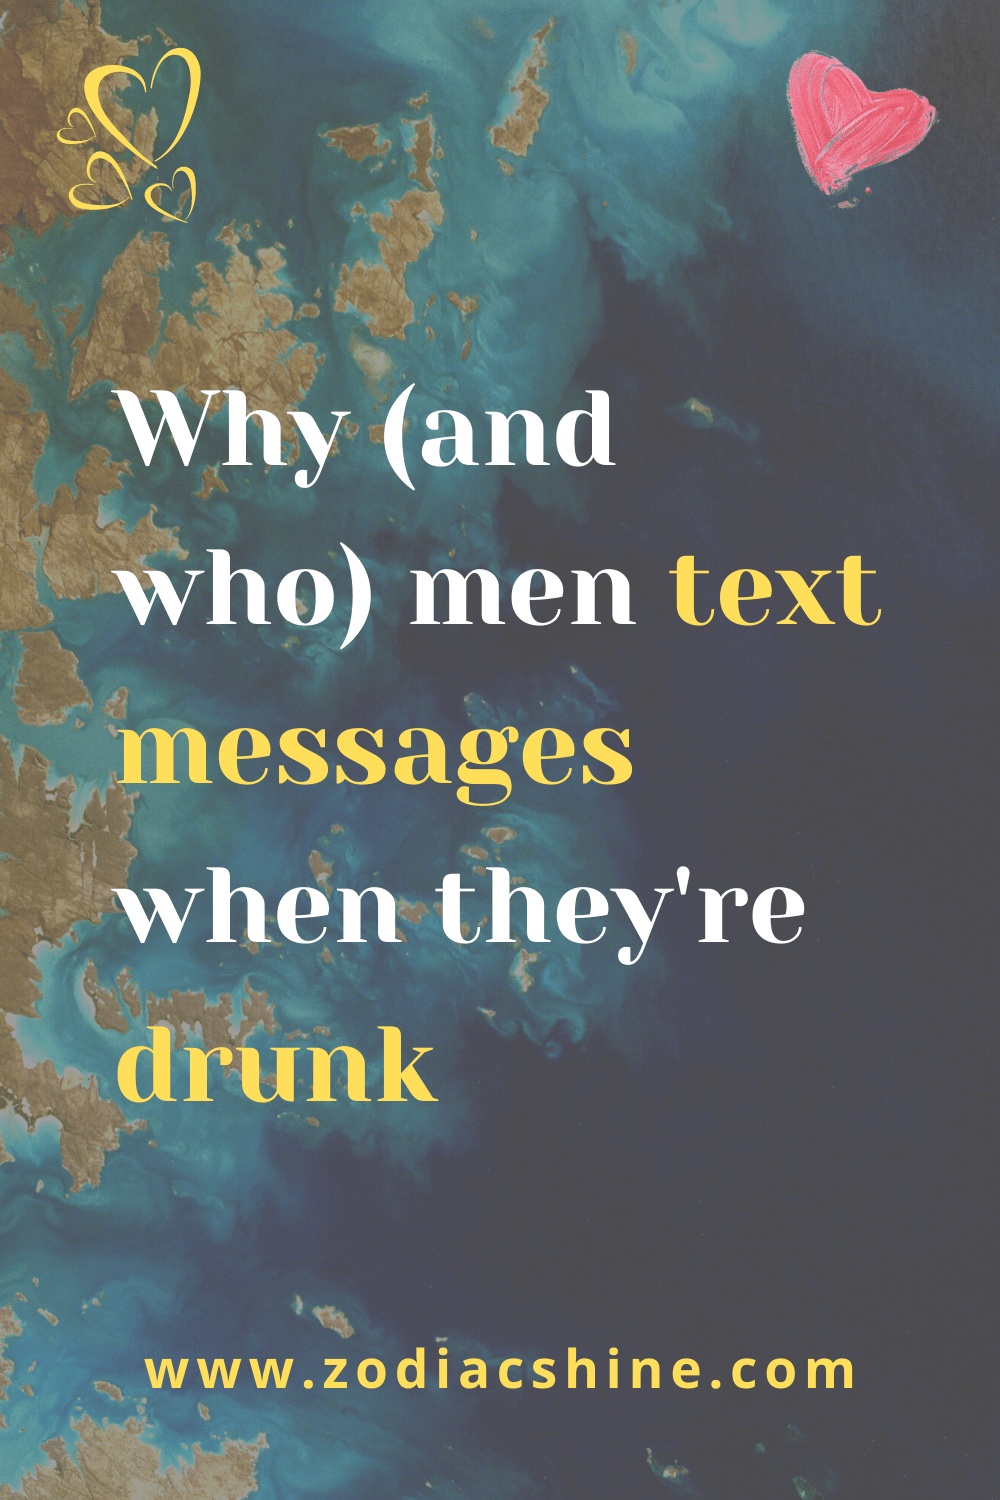 Why (and who) men text messages when they're drunk